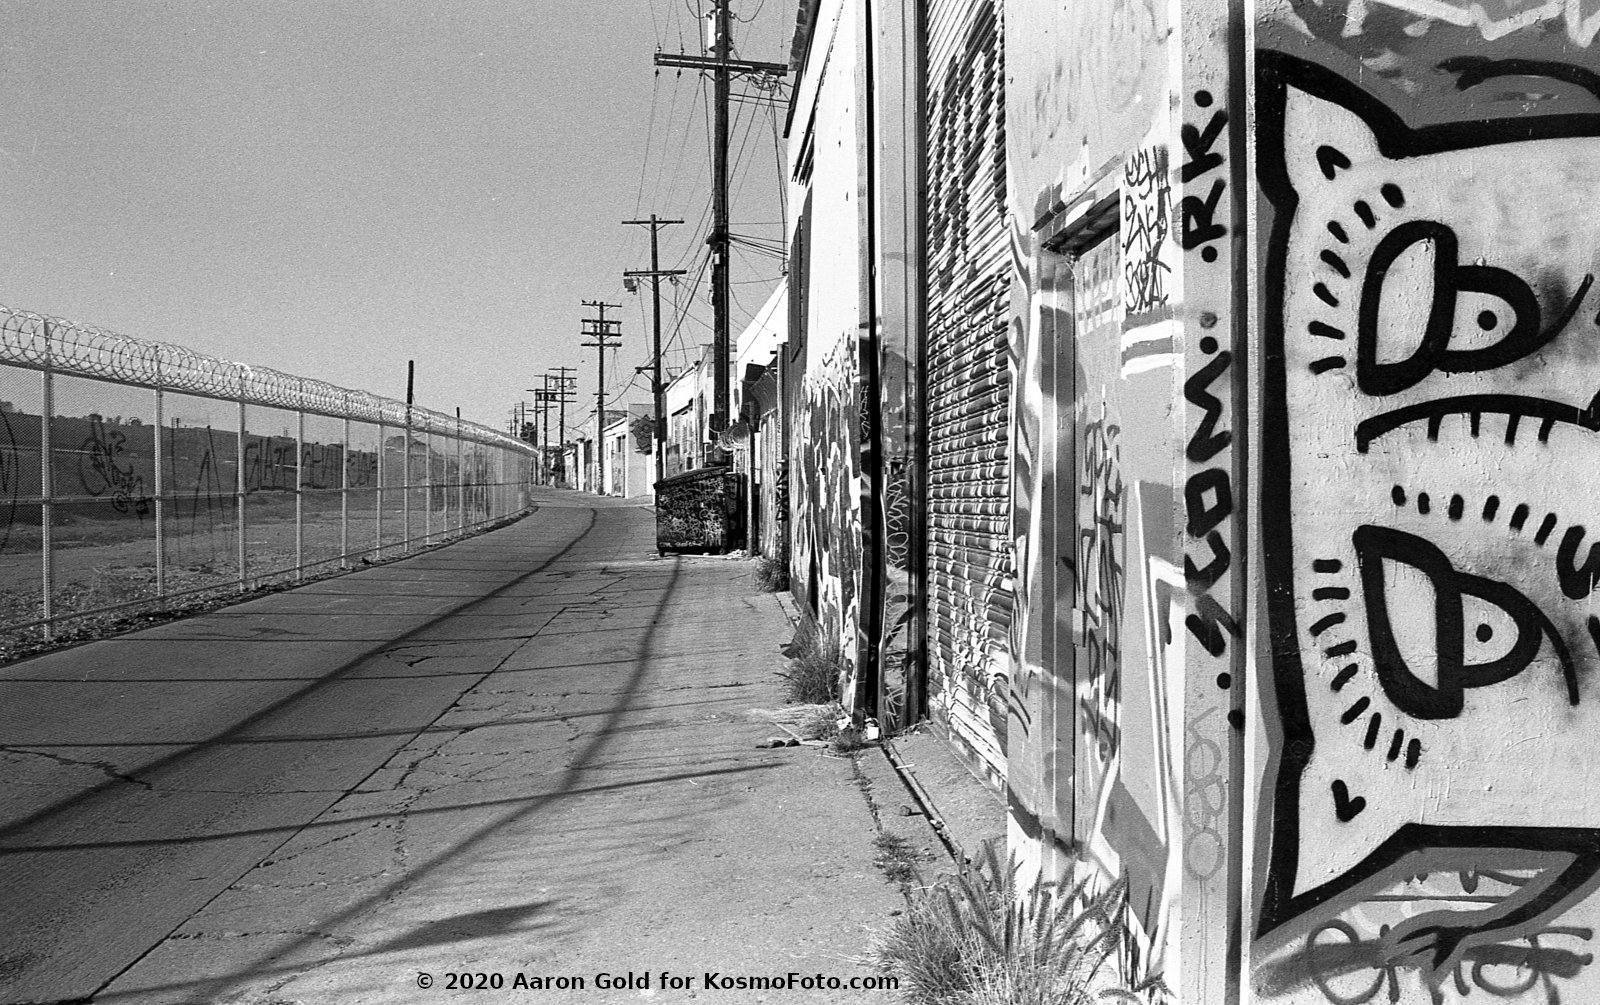 Street and graffiti (Pic: Aaron Gold)